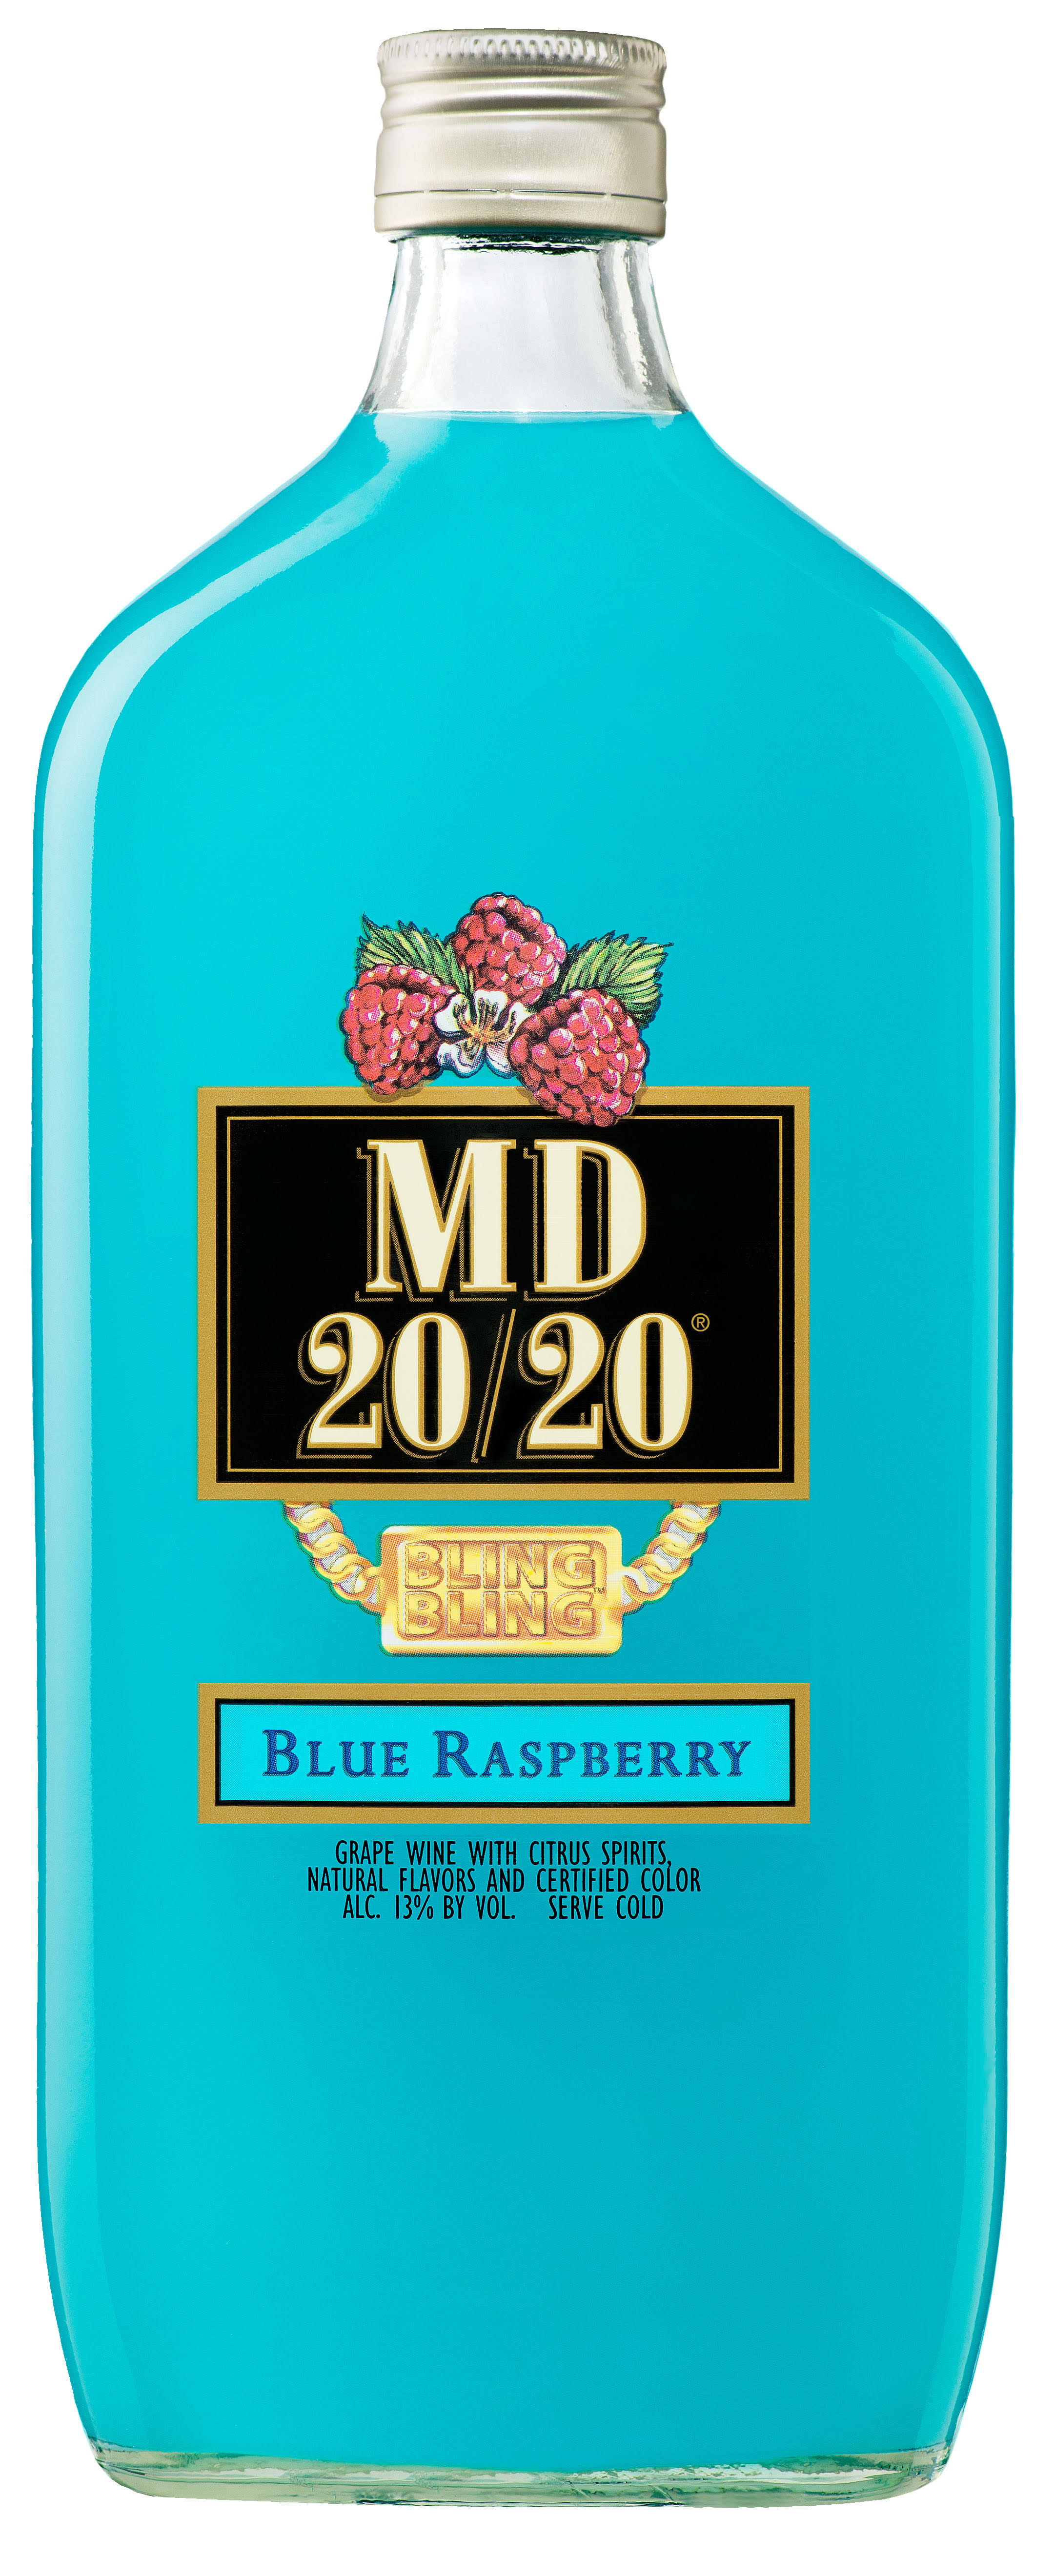 MD 20/20 Blue Raspberry Flavored Wine - 750ml